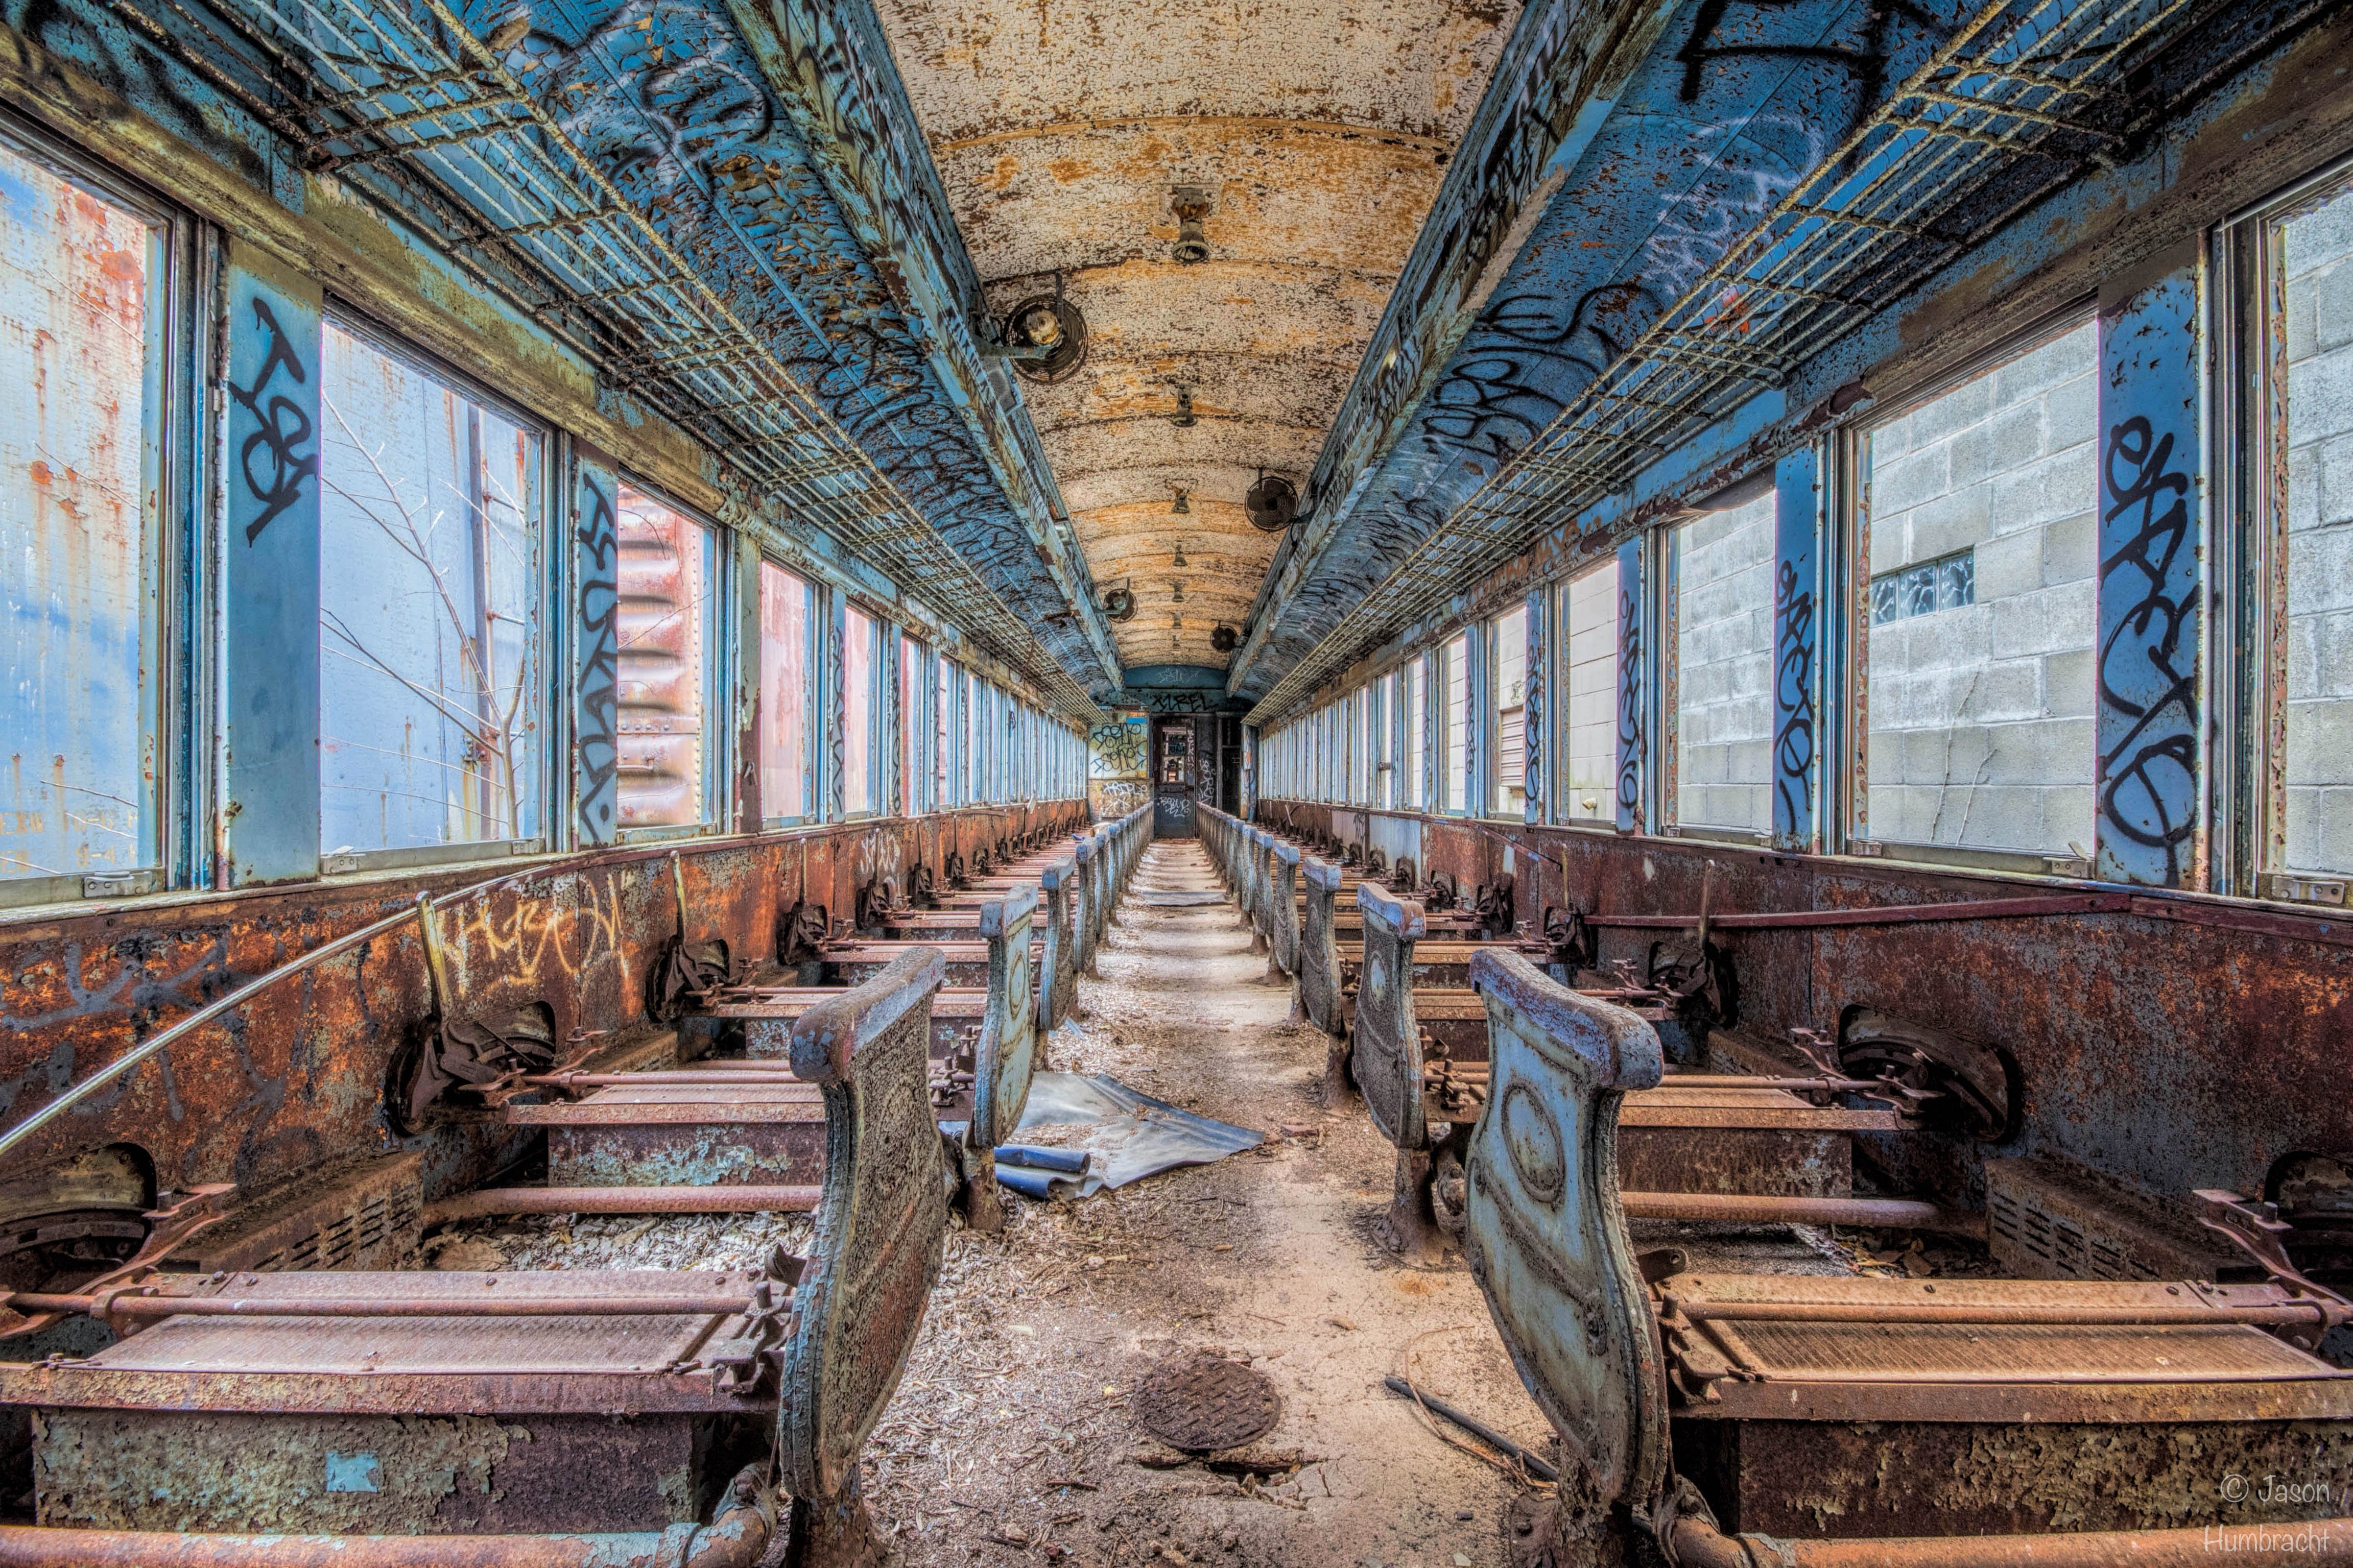 Abandoned Passenger Train In The Indiana Countryside